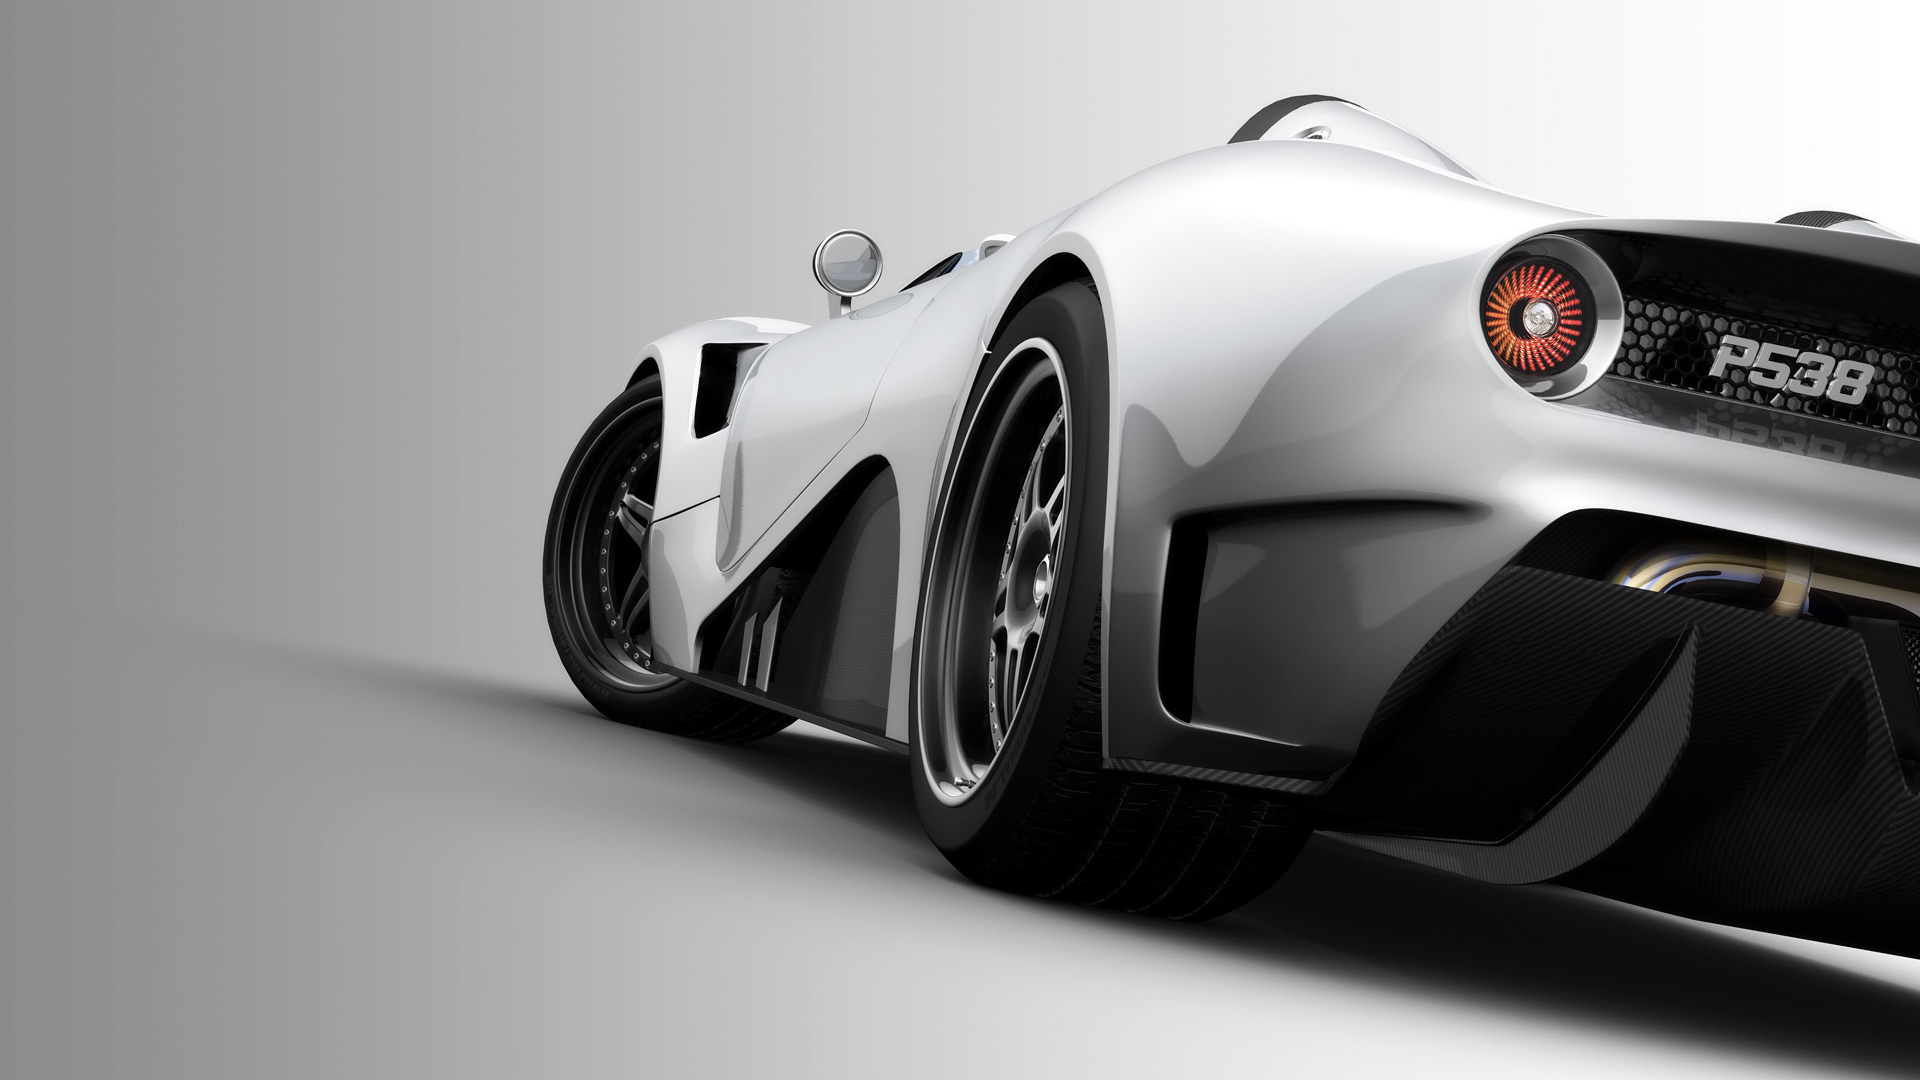 Side view car hd wallpaper 1080p for desktop my site - Car side view wallpaper ...